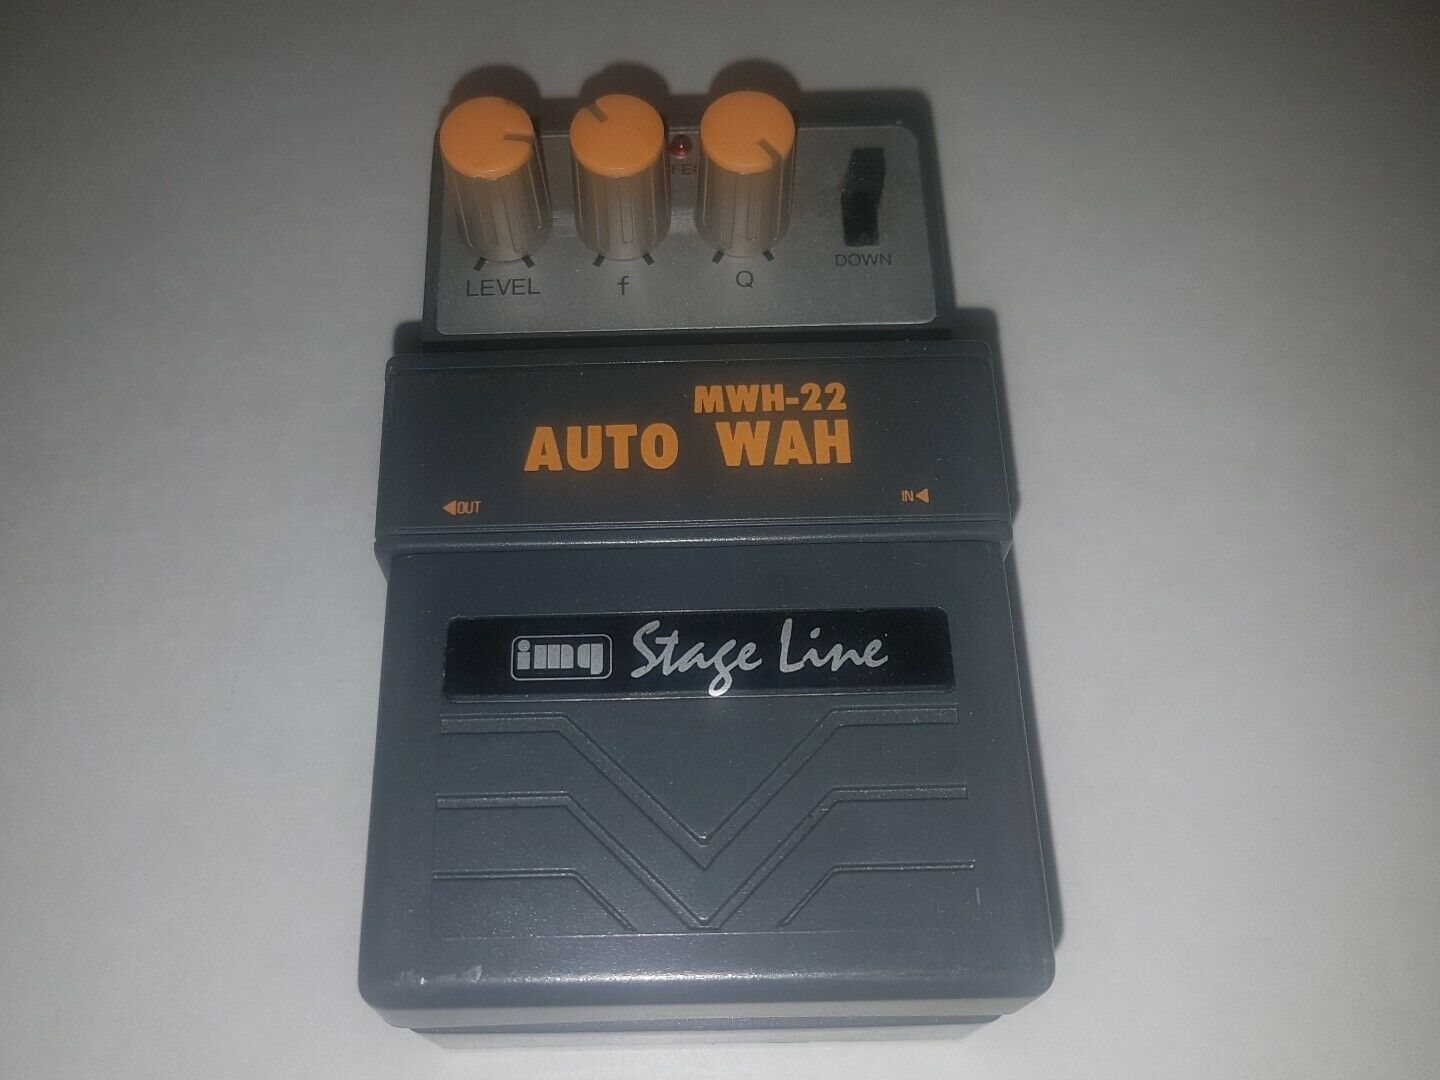 STAGE LINE AUTO WAH MWH 22